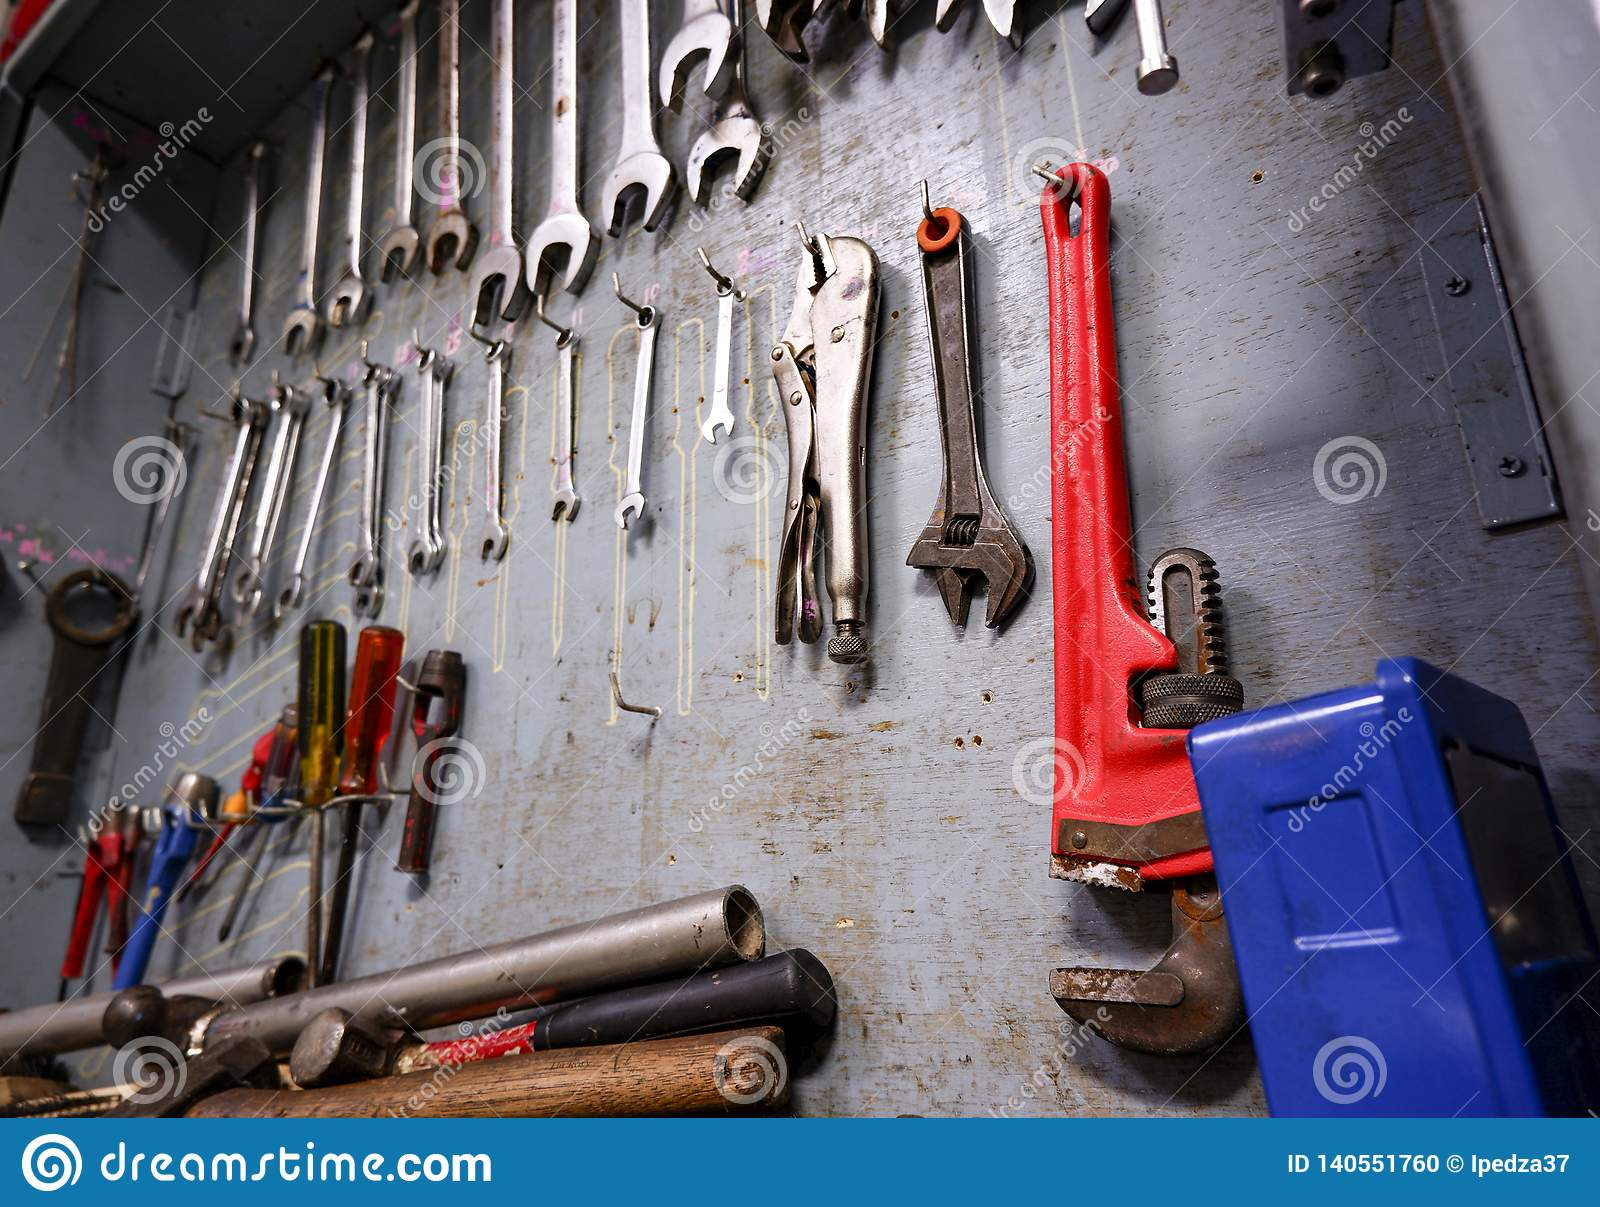 Repair tool cabinet Which is full of equipment for industrial work